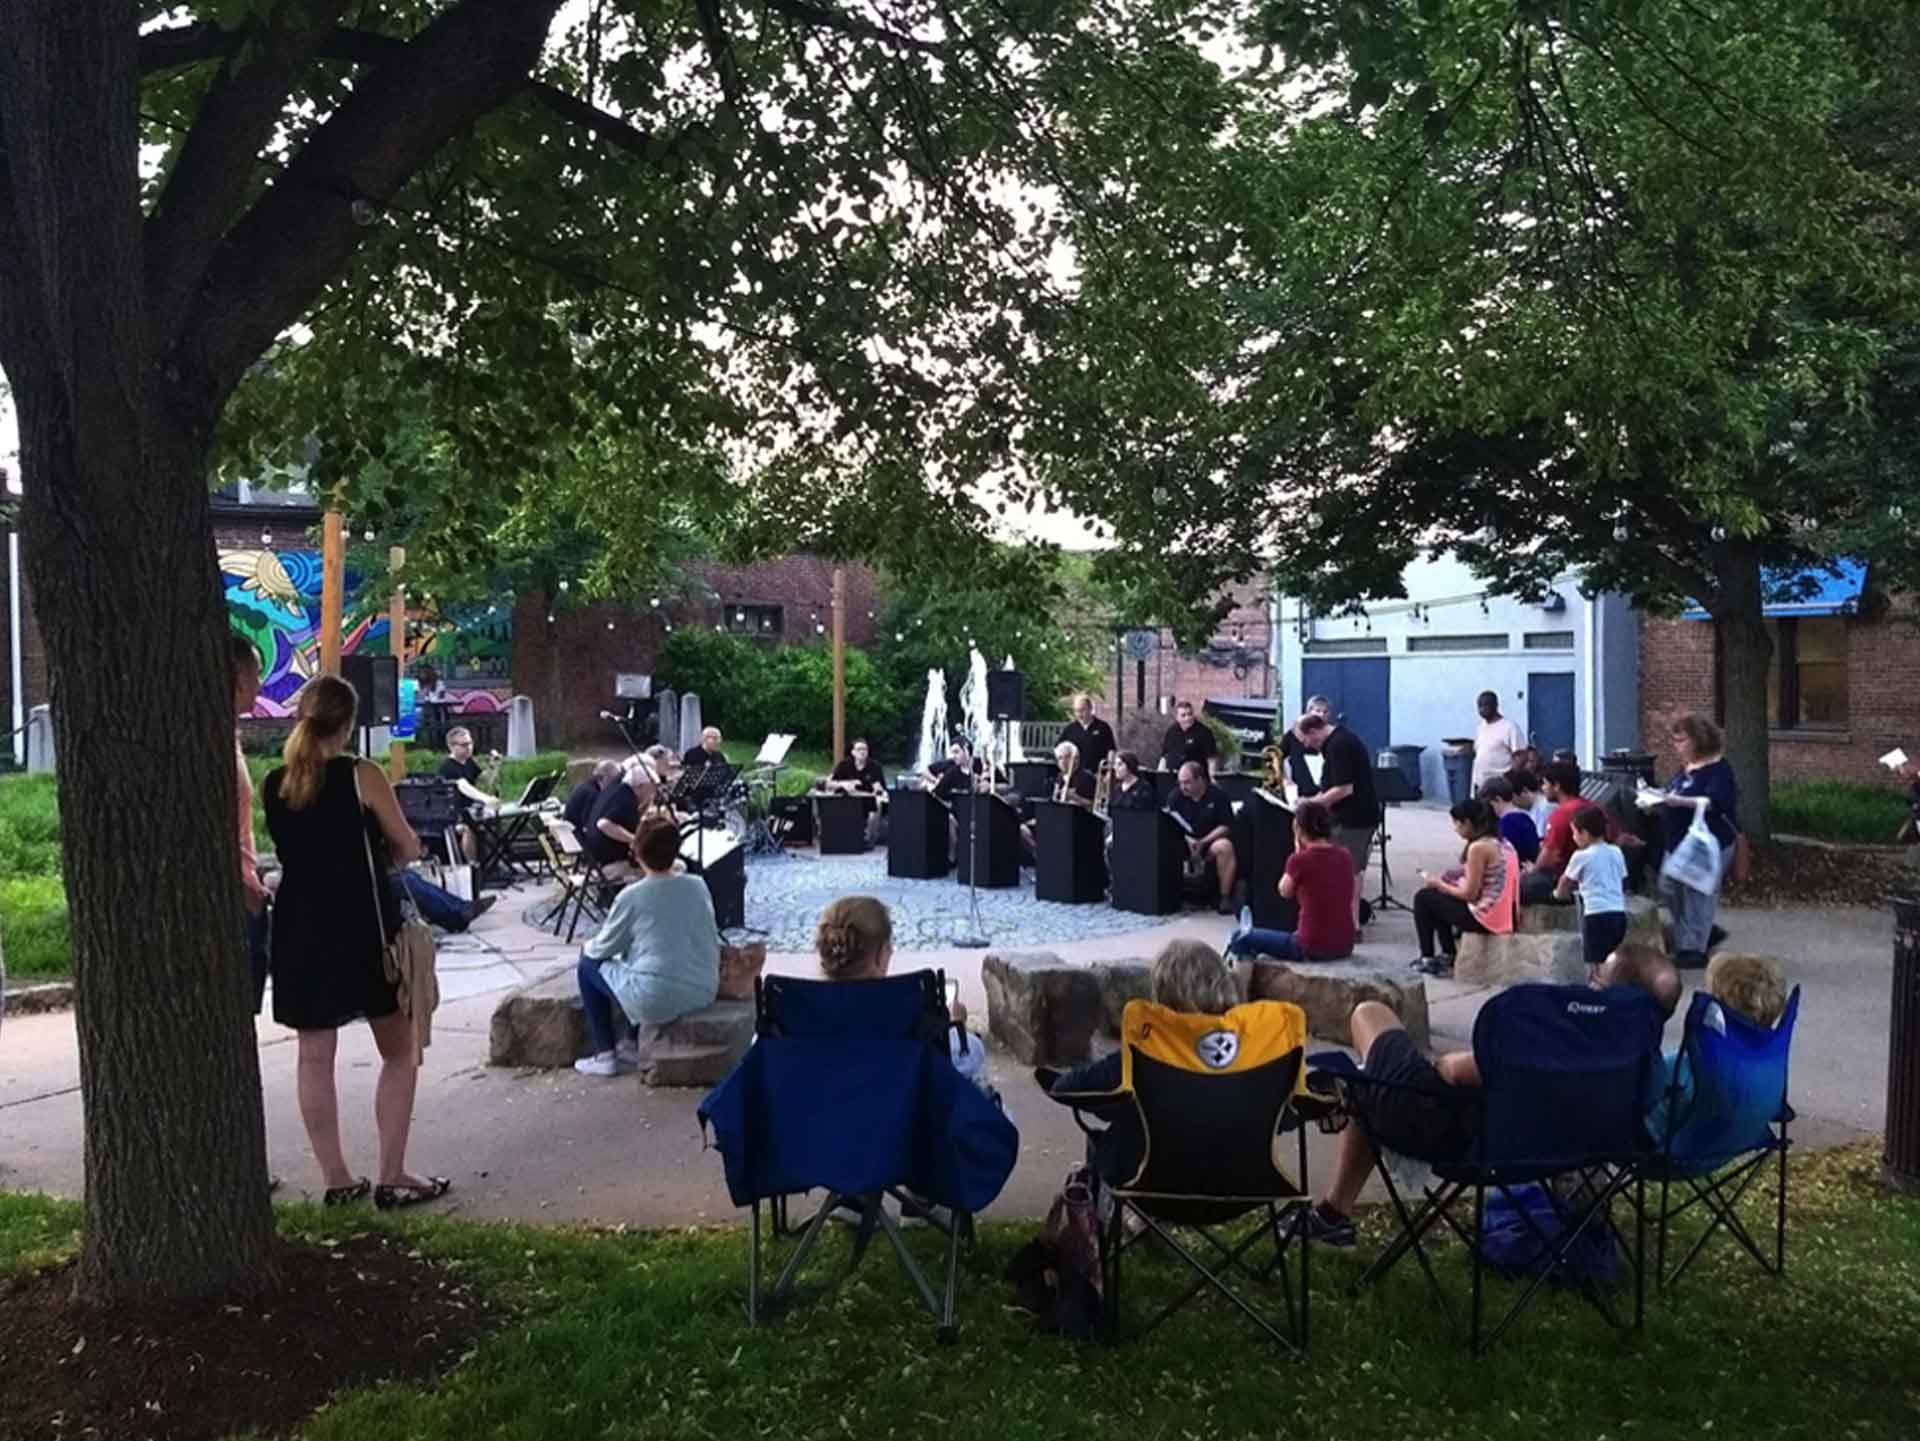 South Orange Downtown After Sundown Announces 2019 Live Music Concert Lineup.jpg